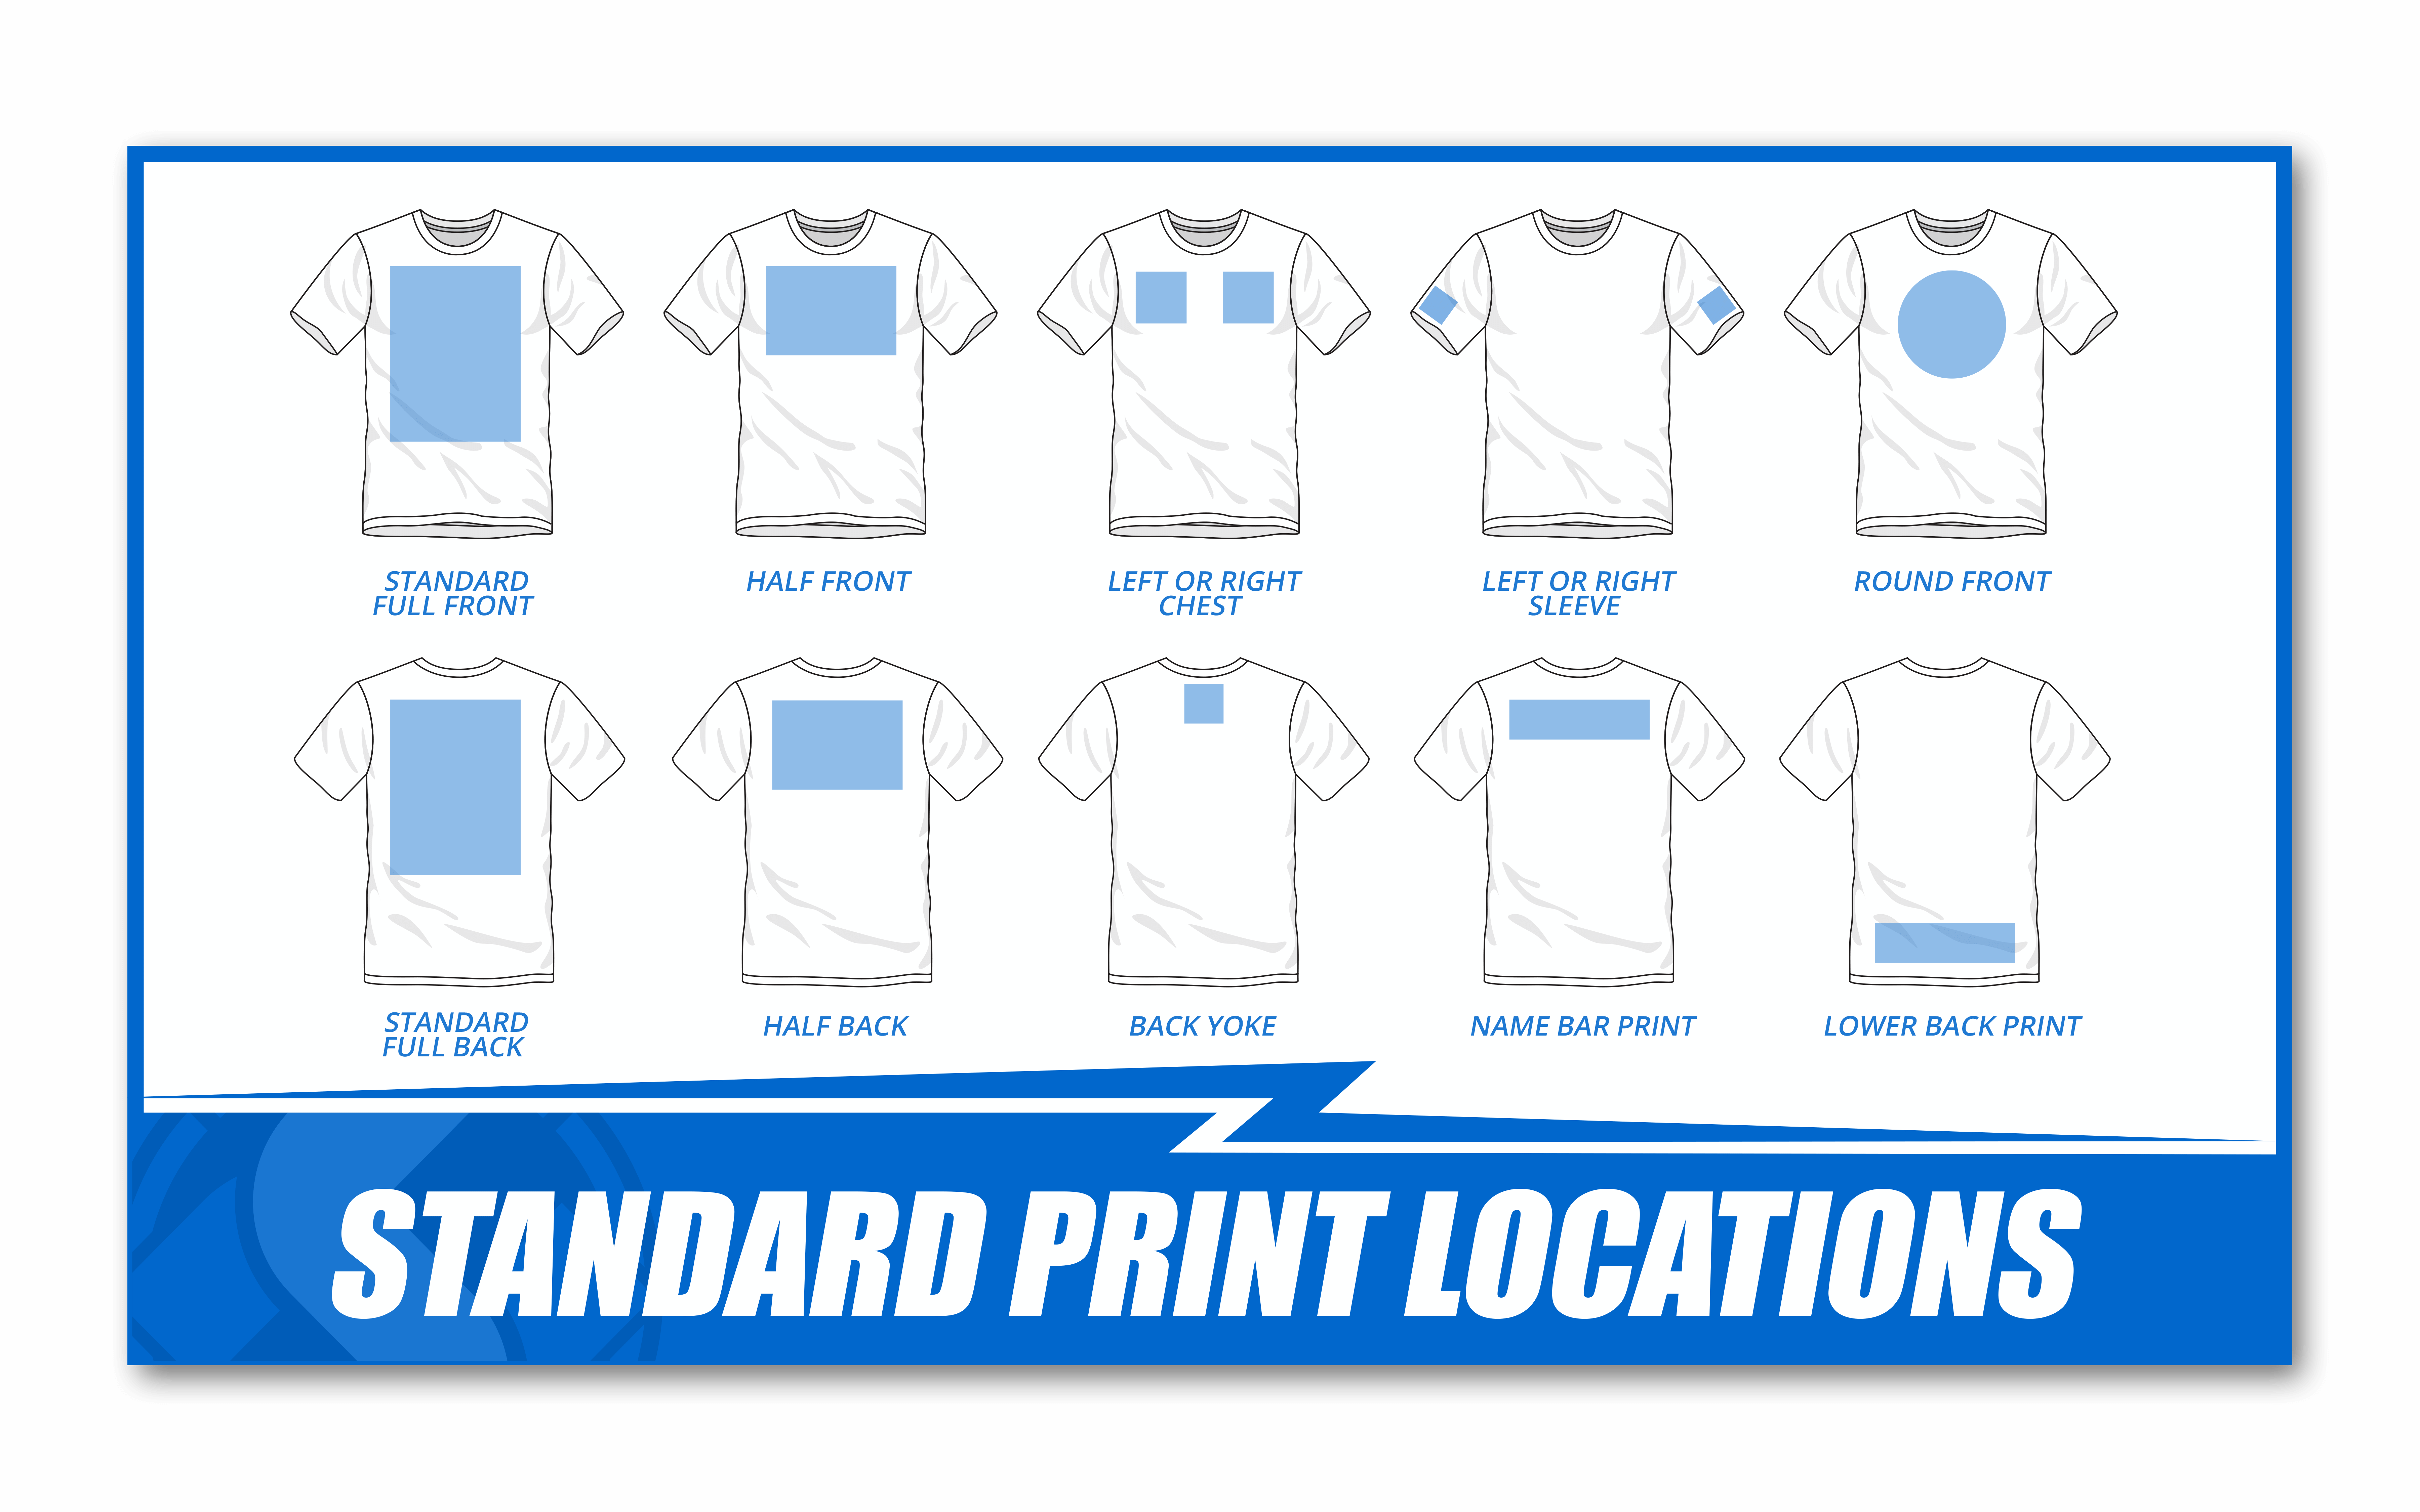 a chart showing standard print locations on a t shirt